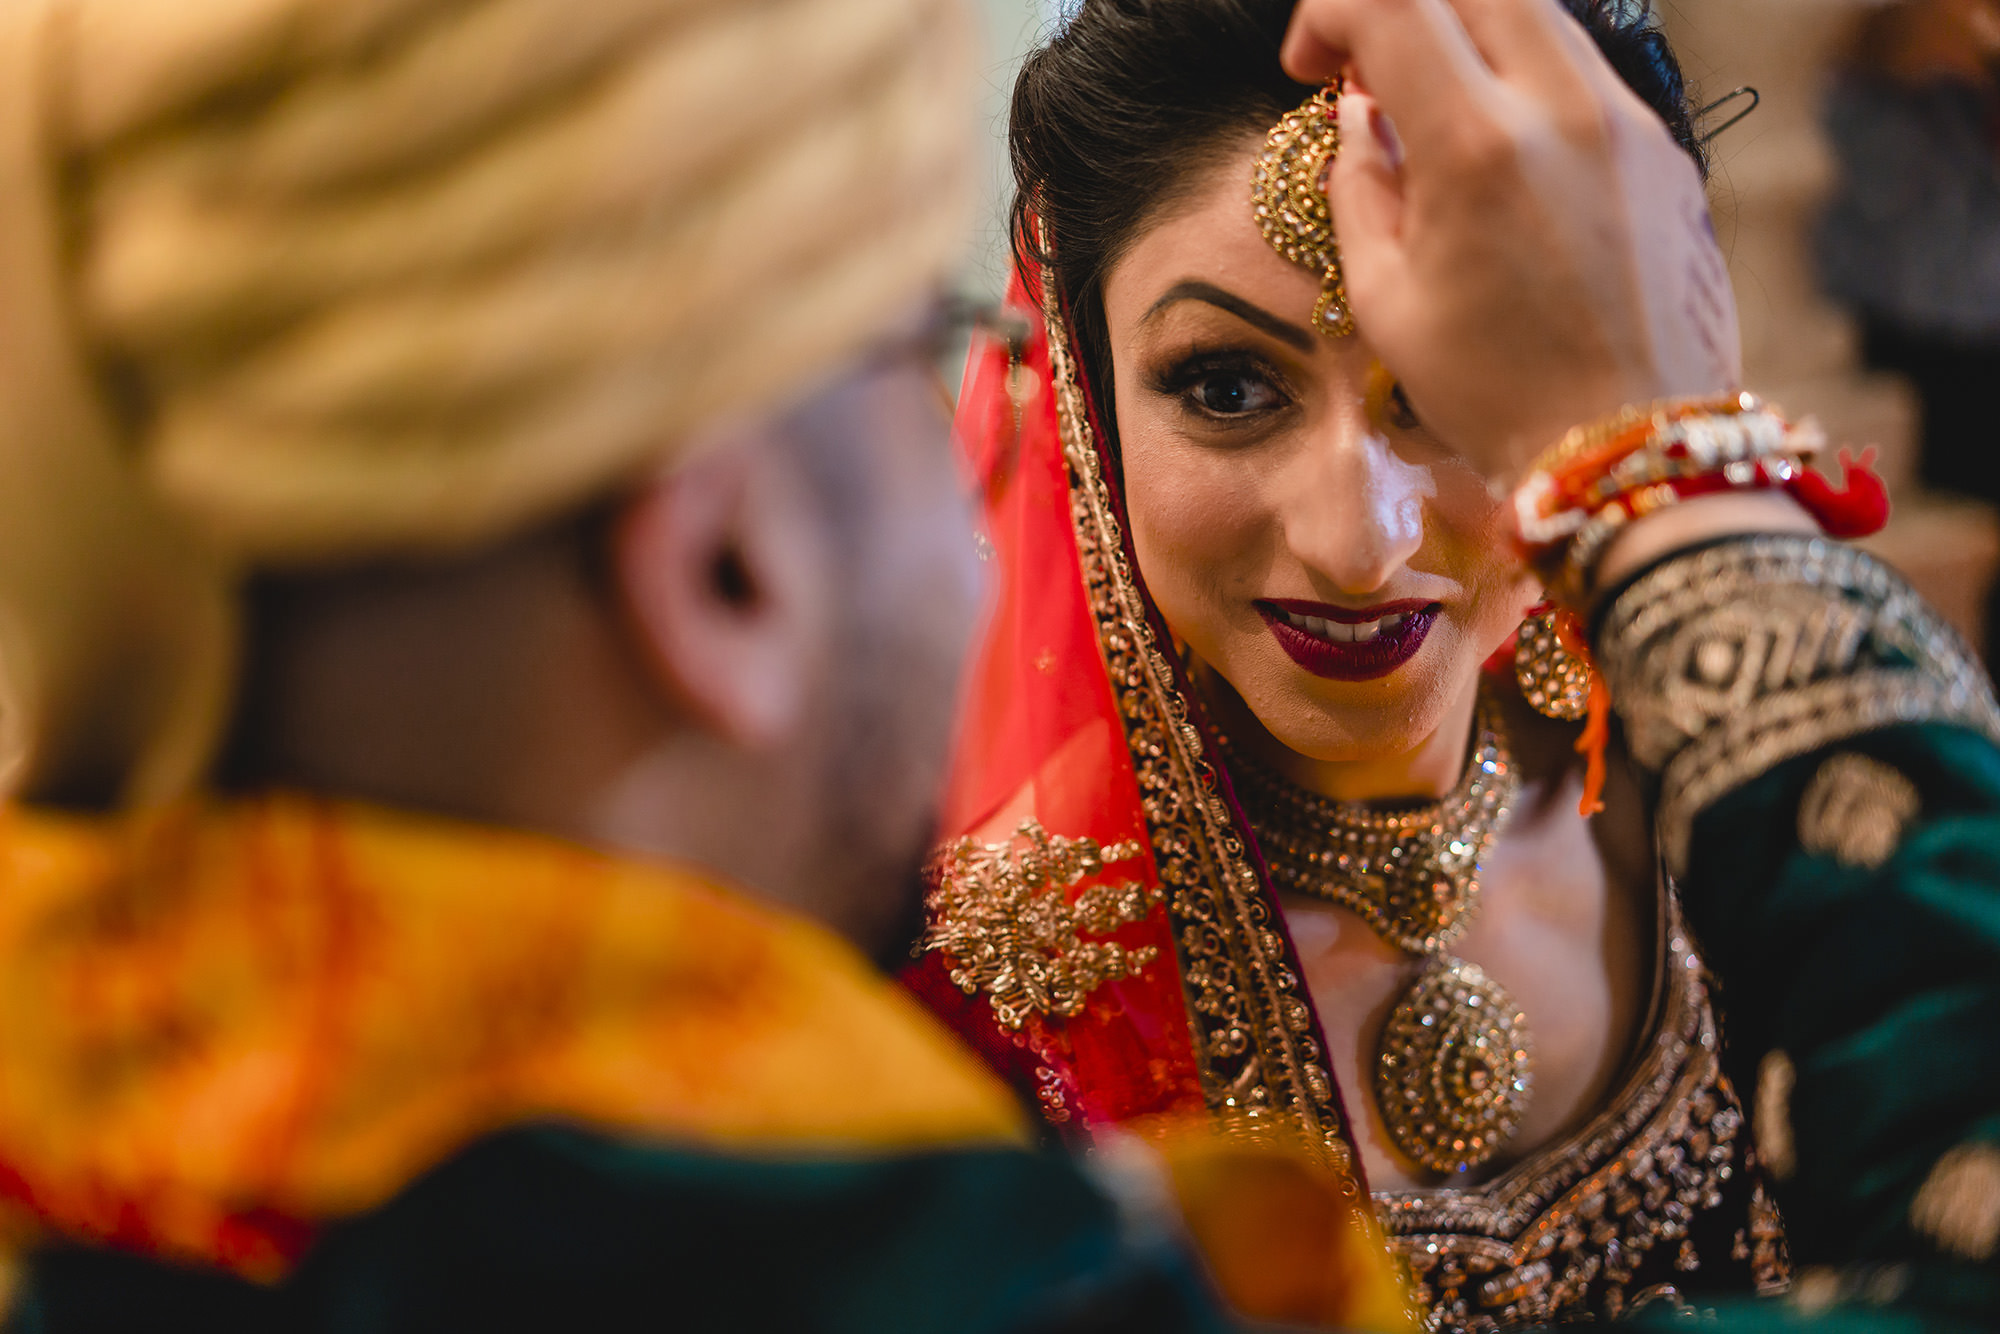 sindhoor placed on brides forehead during hindu wedding ceremony